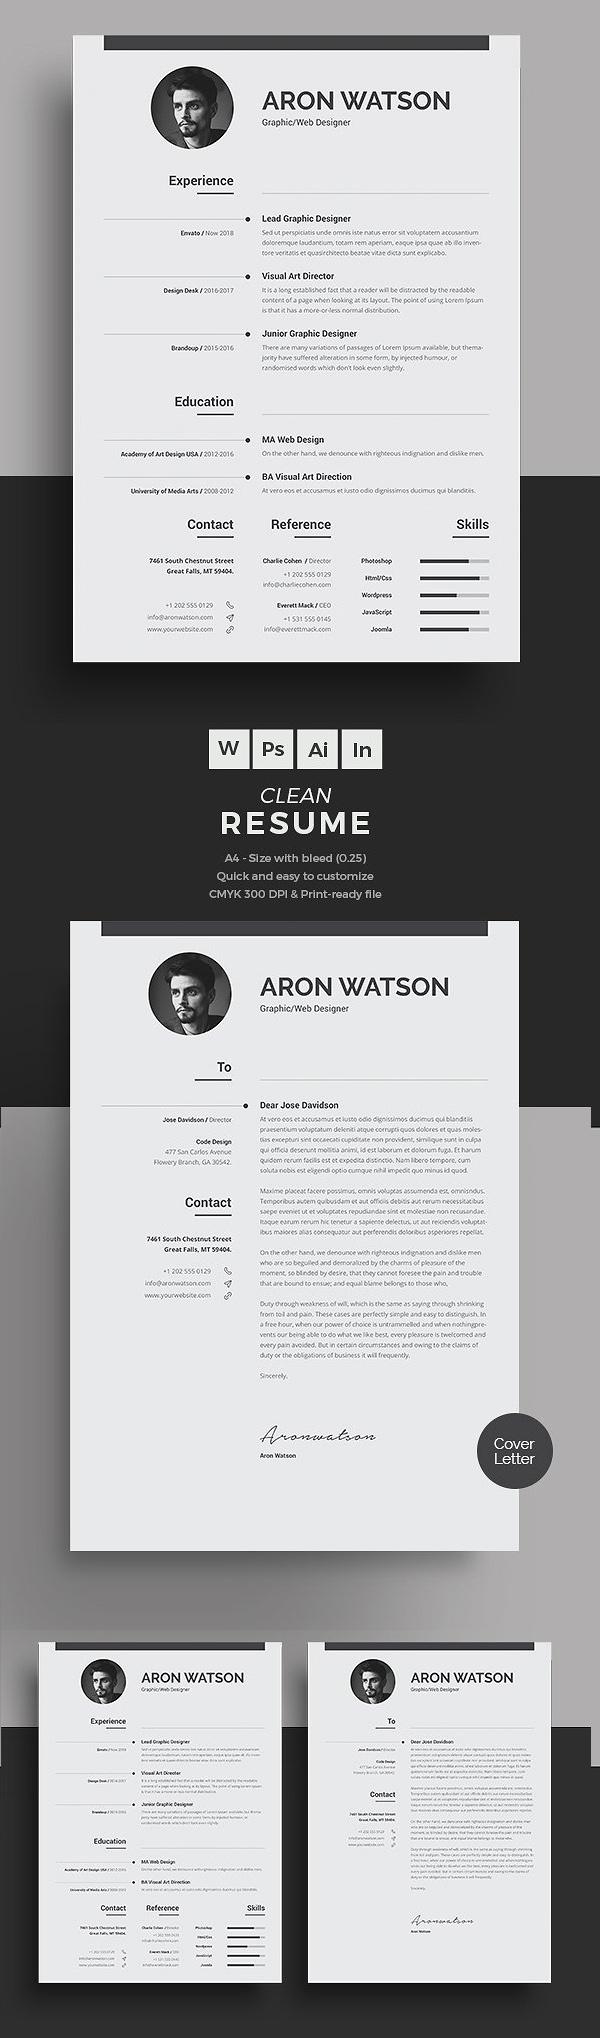 50 Best Minimal Resume Templates - 12